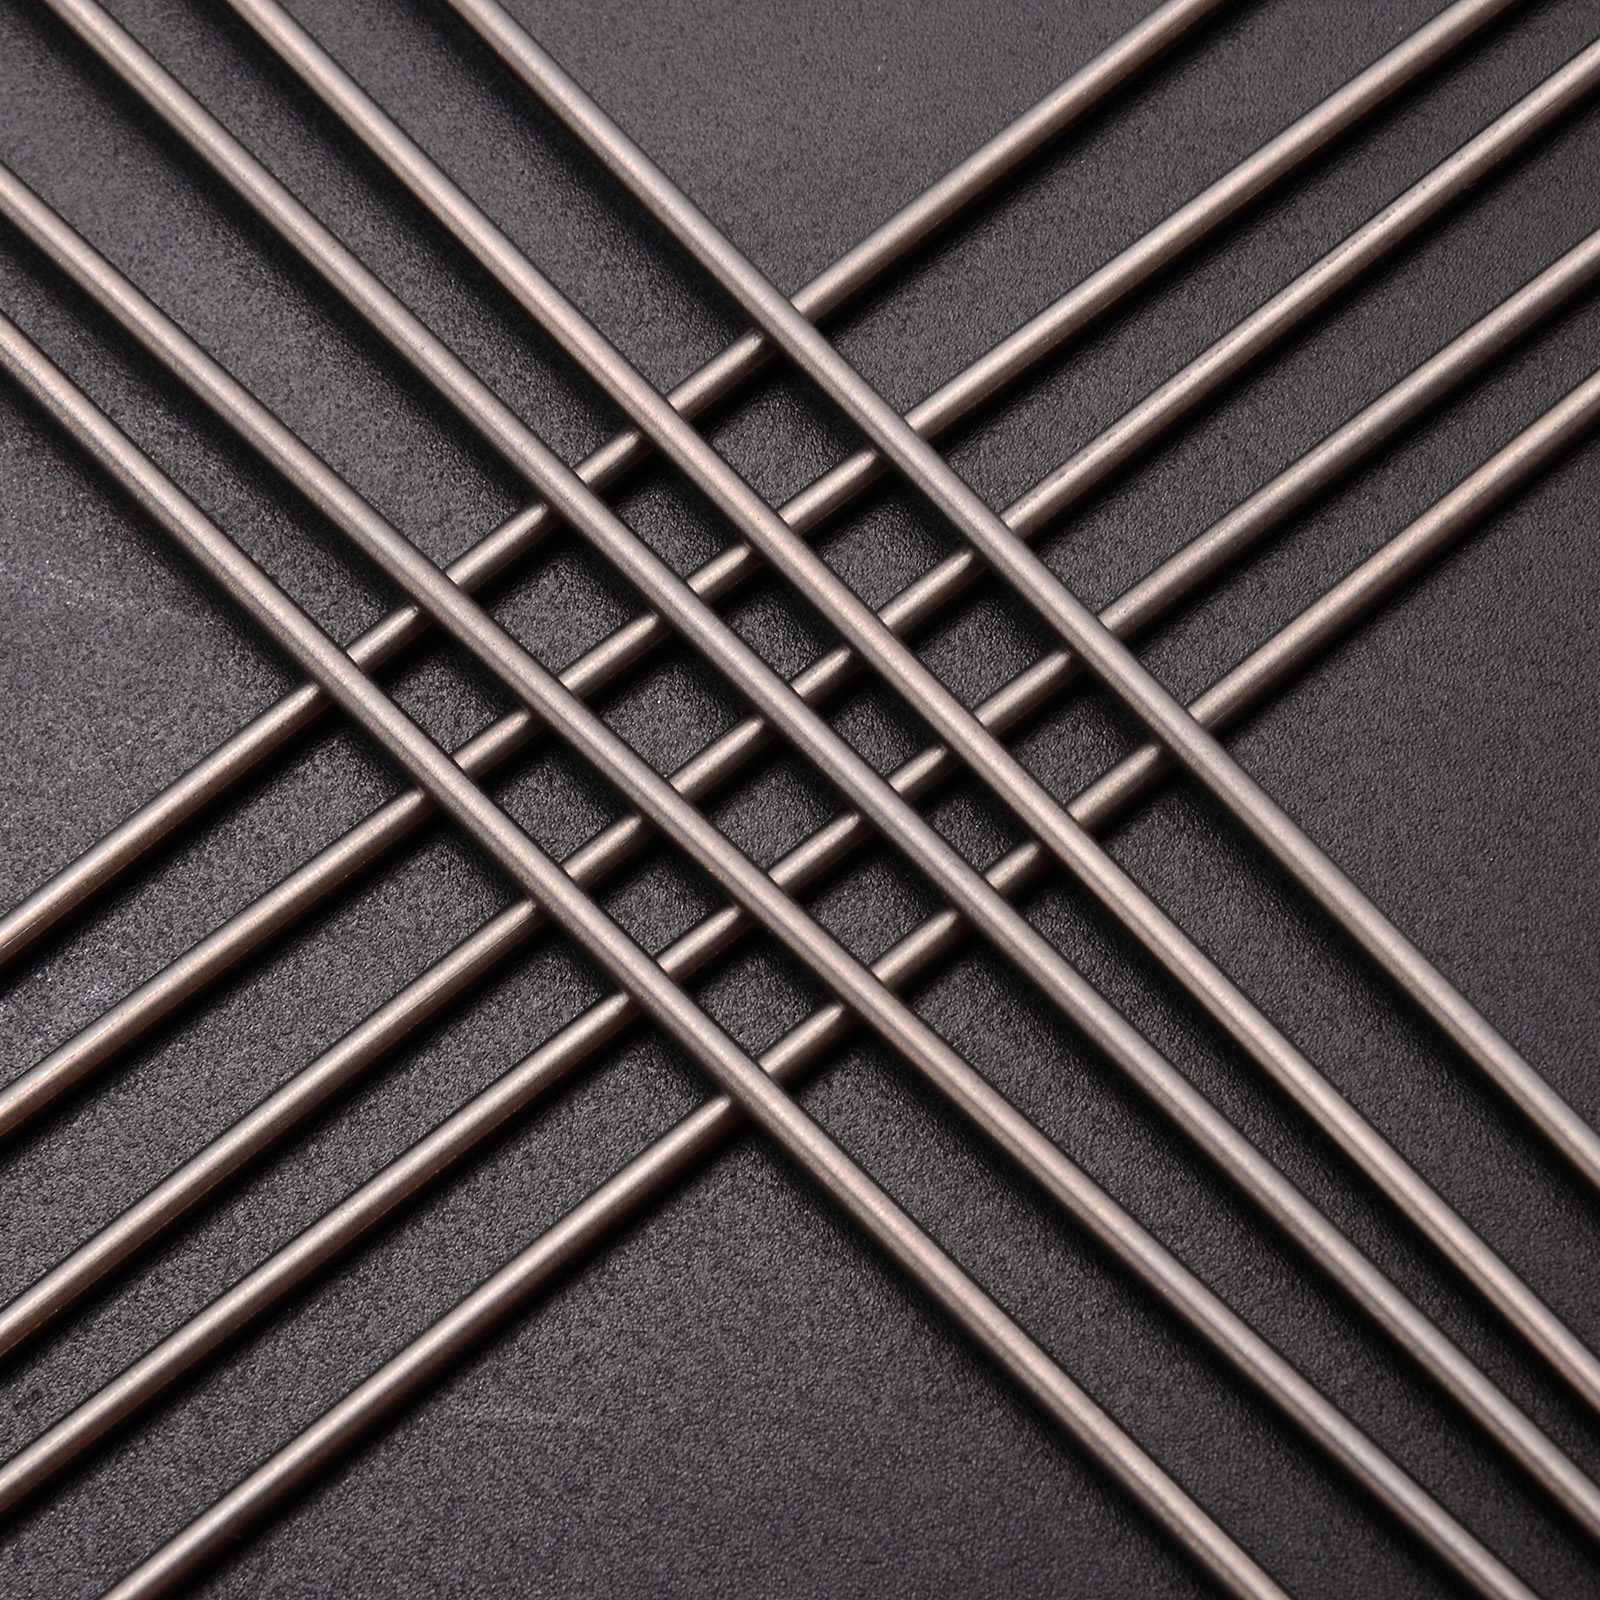 10pcs TC4 Titanium Rod 6al-4v Round Bar Ti Gr 5 Grade 5 Rods 2mm Diameter  250mm Length For Welding